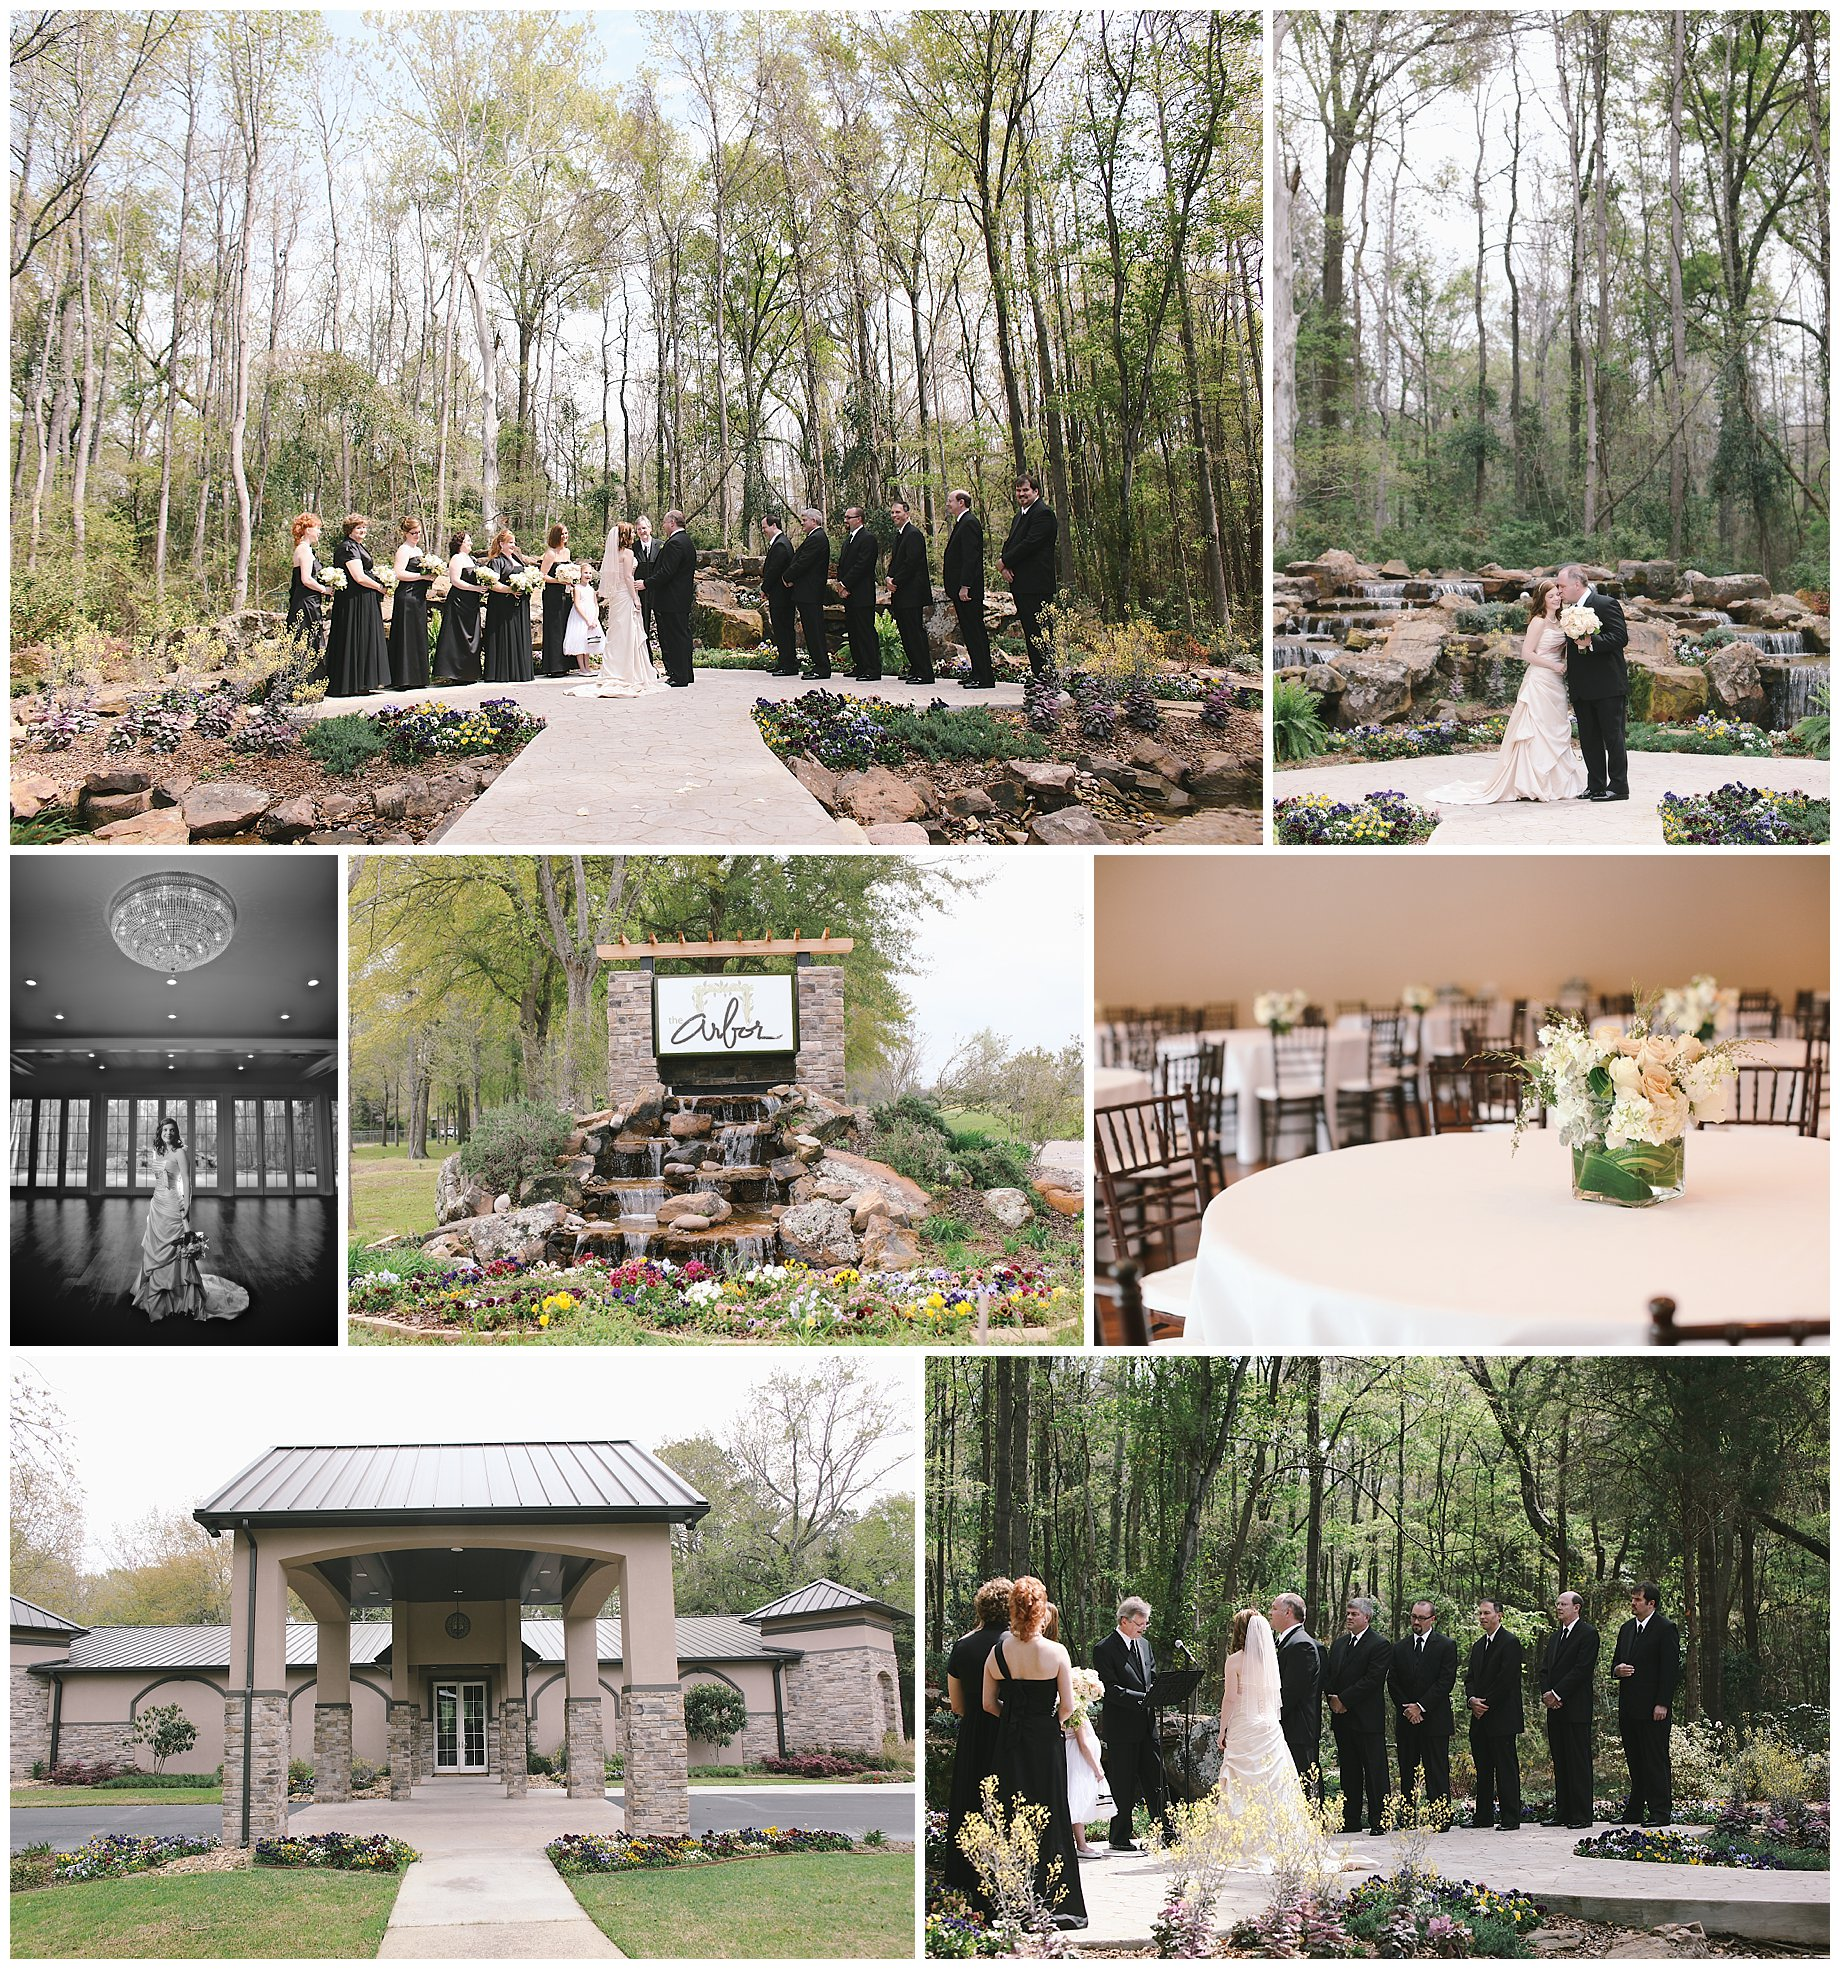 10 Amazing Places To Get Married In East Texas